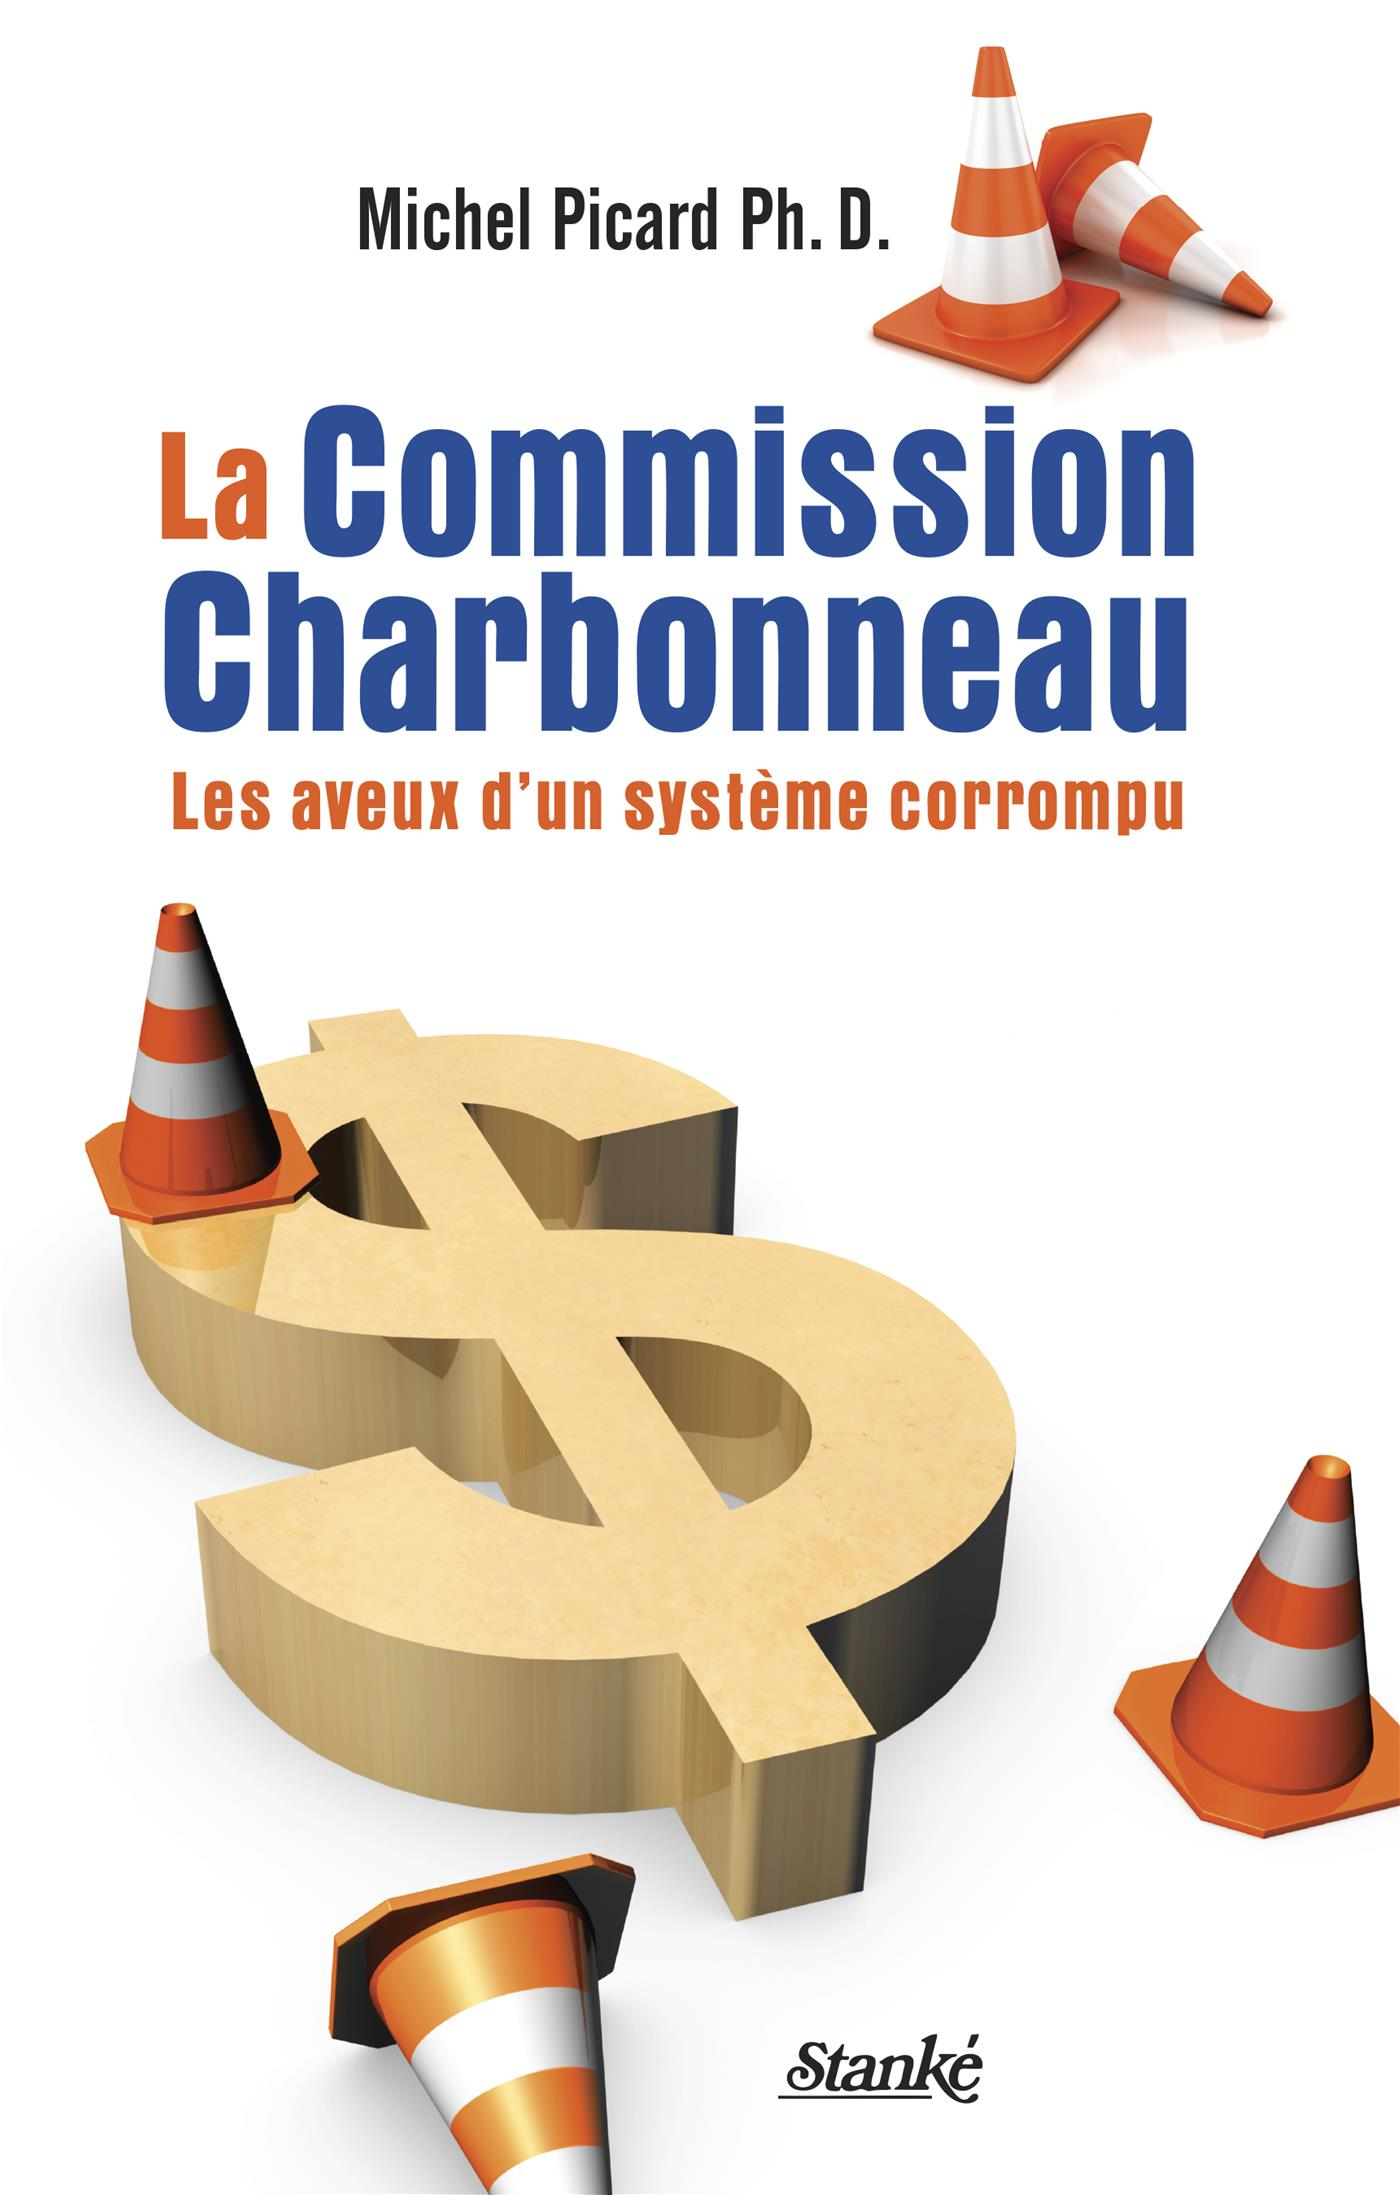 La Commission Charbonneau